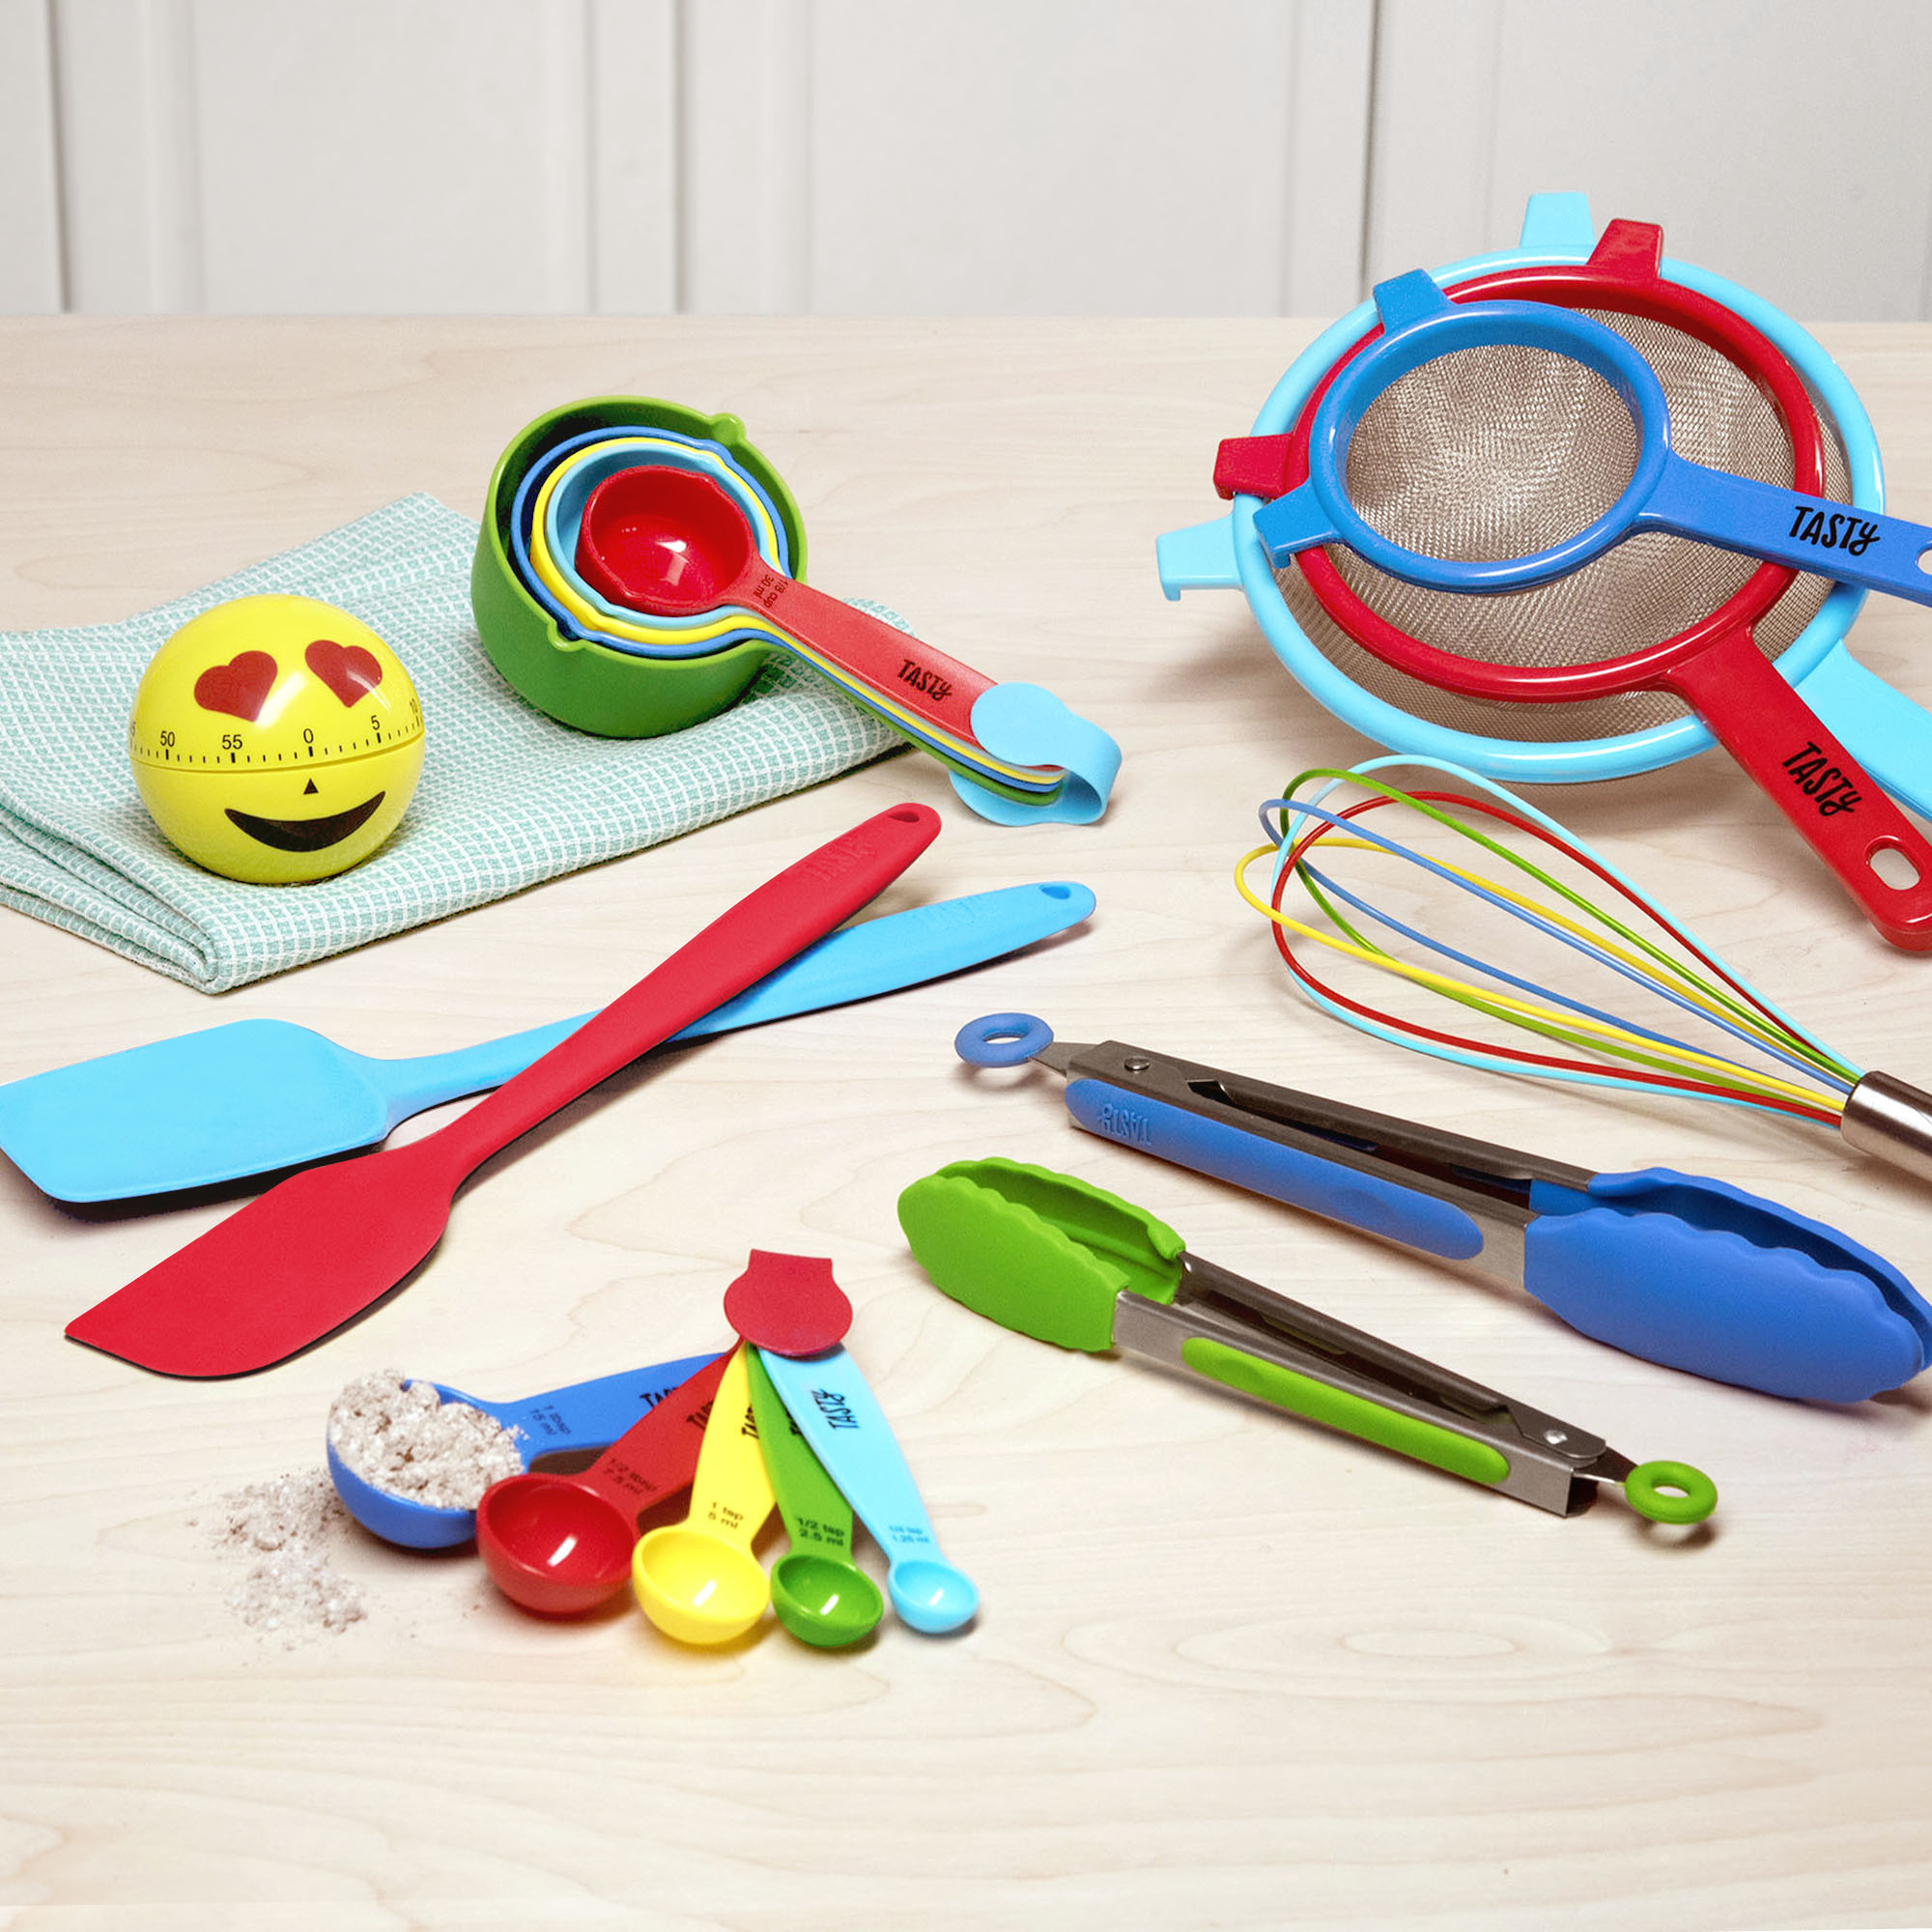 Tasty 19pc Kitchen Utensil and Gadget Set